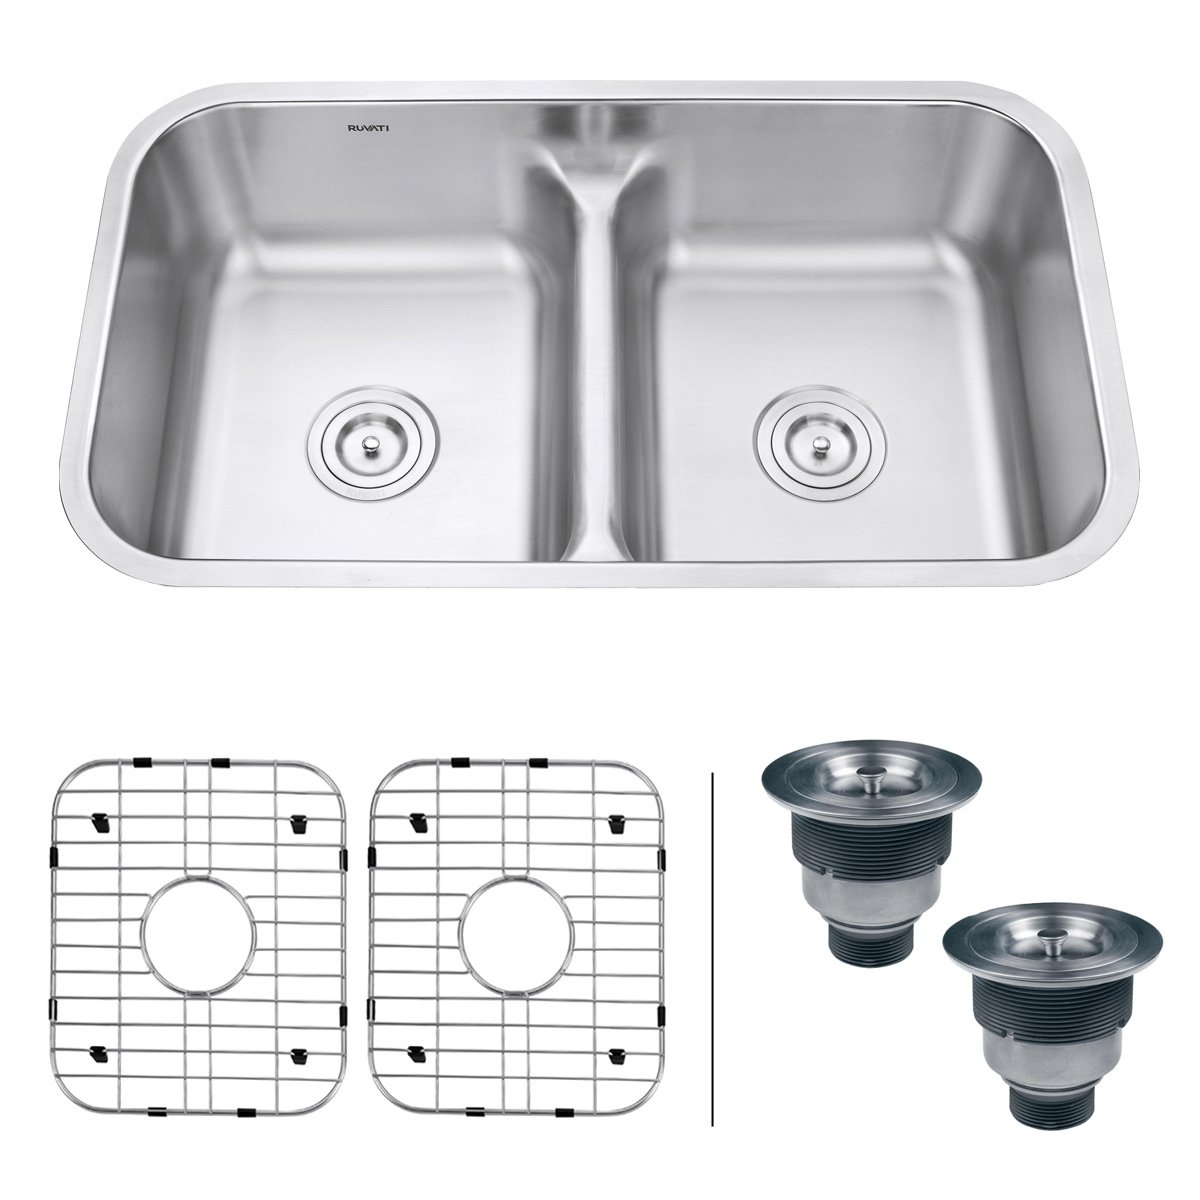 Best Gauge For Kitchen Sink Best rated in double bowl kitchen sinks helpful customer reviews ruvati rvm4350 undermount 32 low divide 16 gauge kitchen sink double bowl product image workwithnaturefo